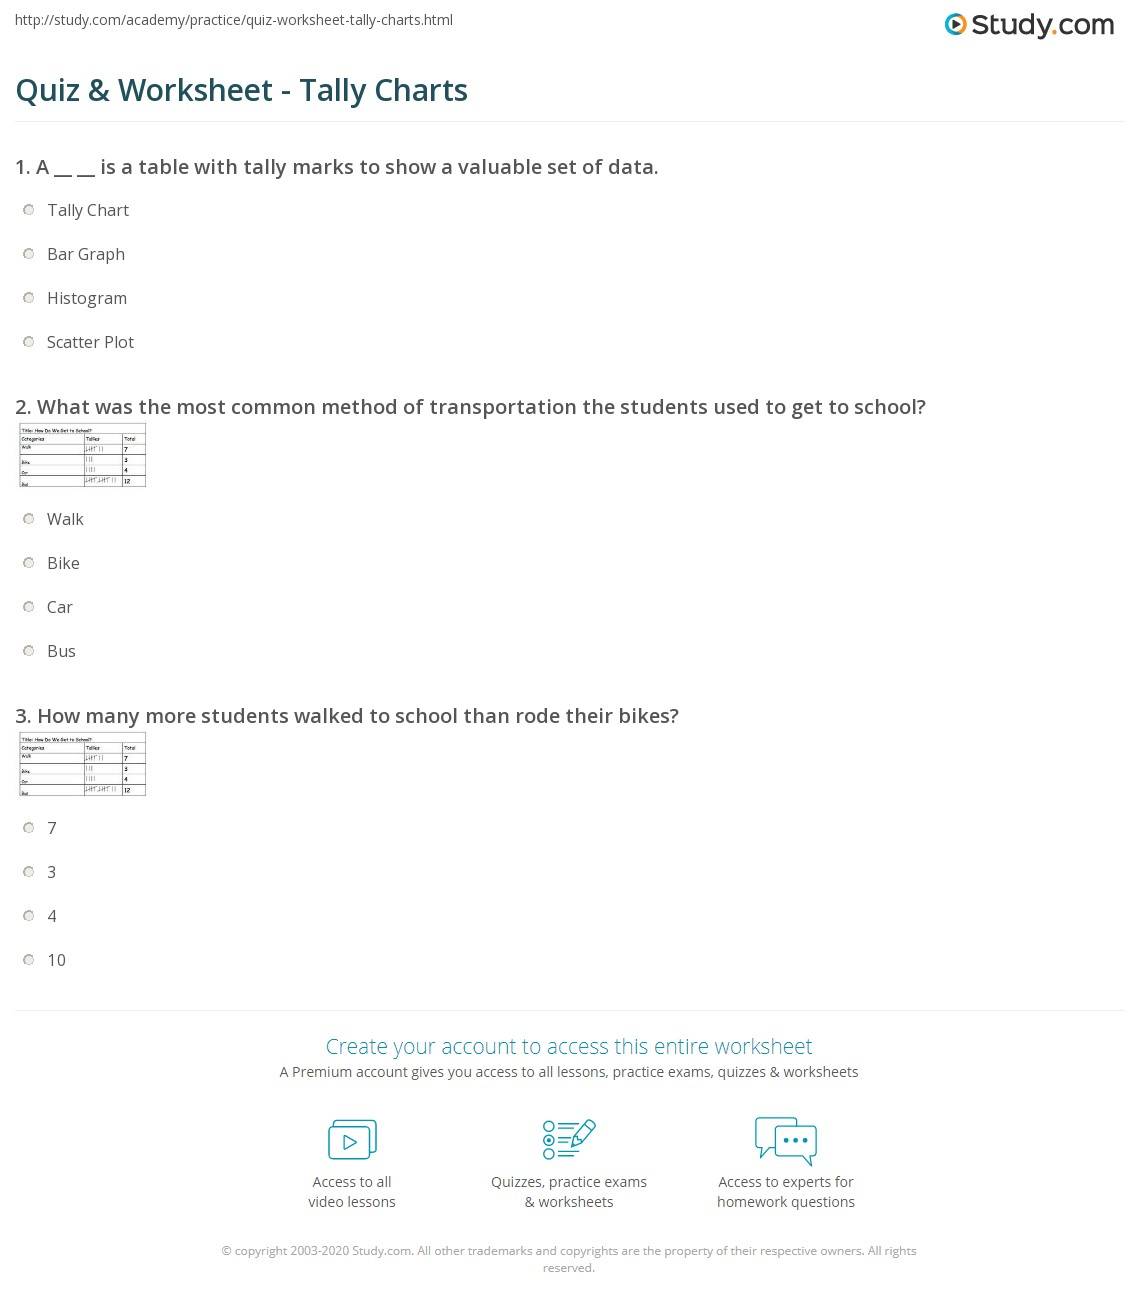 worksheet Tally Chart Worksheets quiz worksheet tally charts study com print chart definition examples worksheet